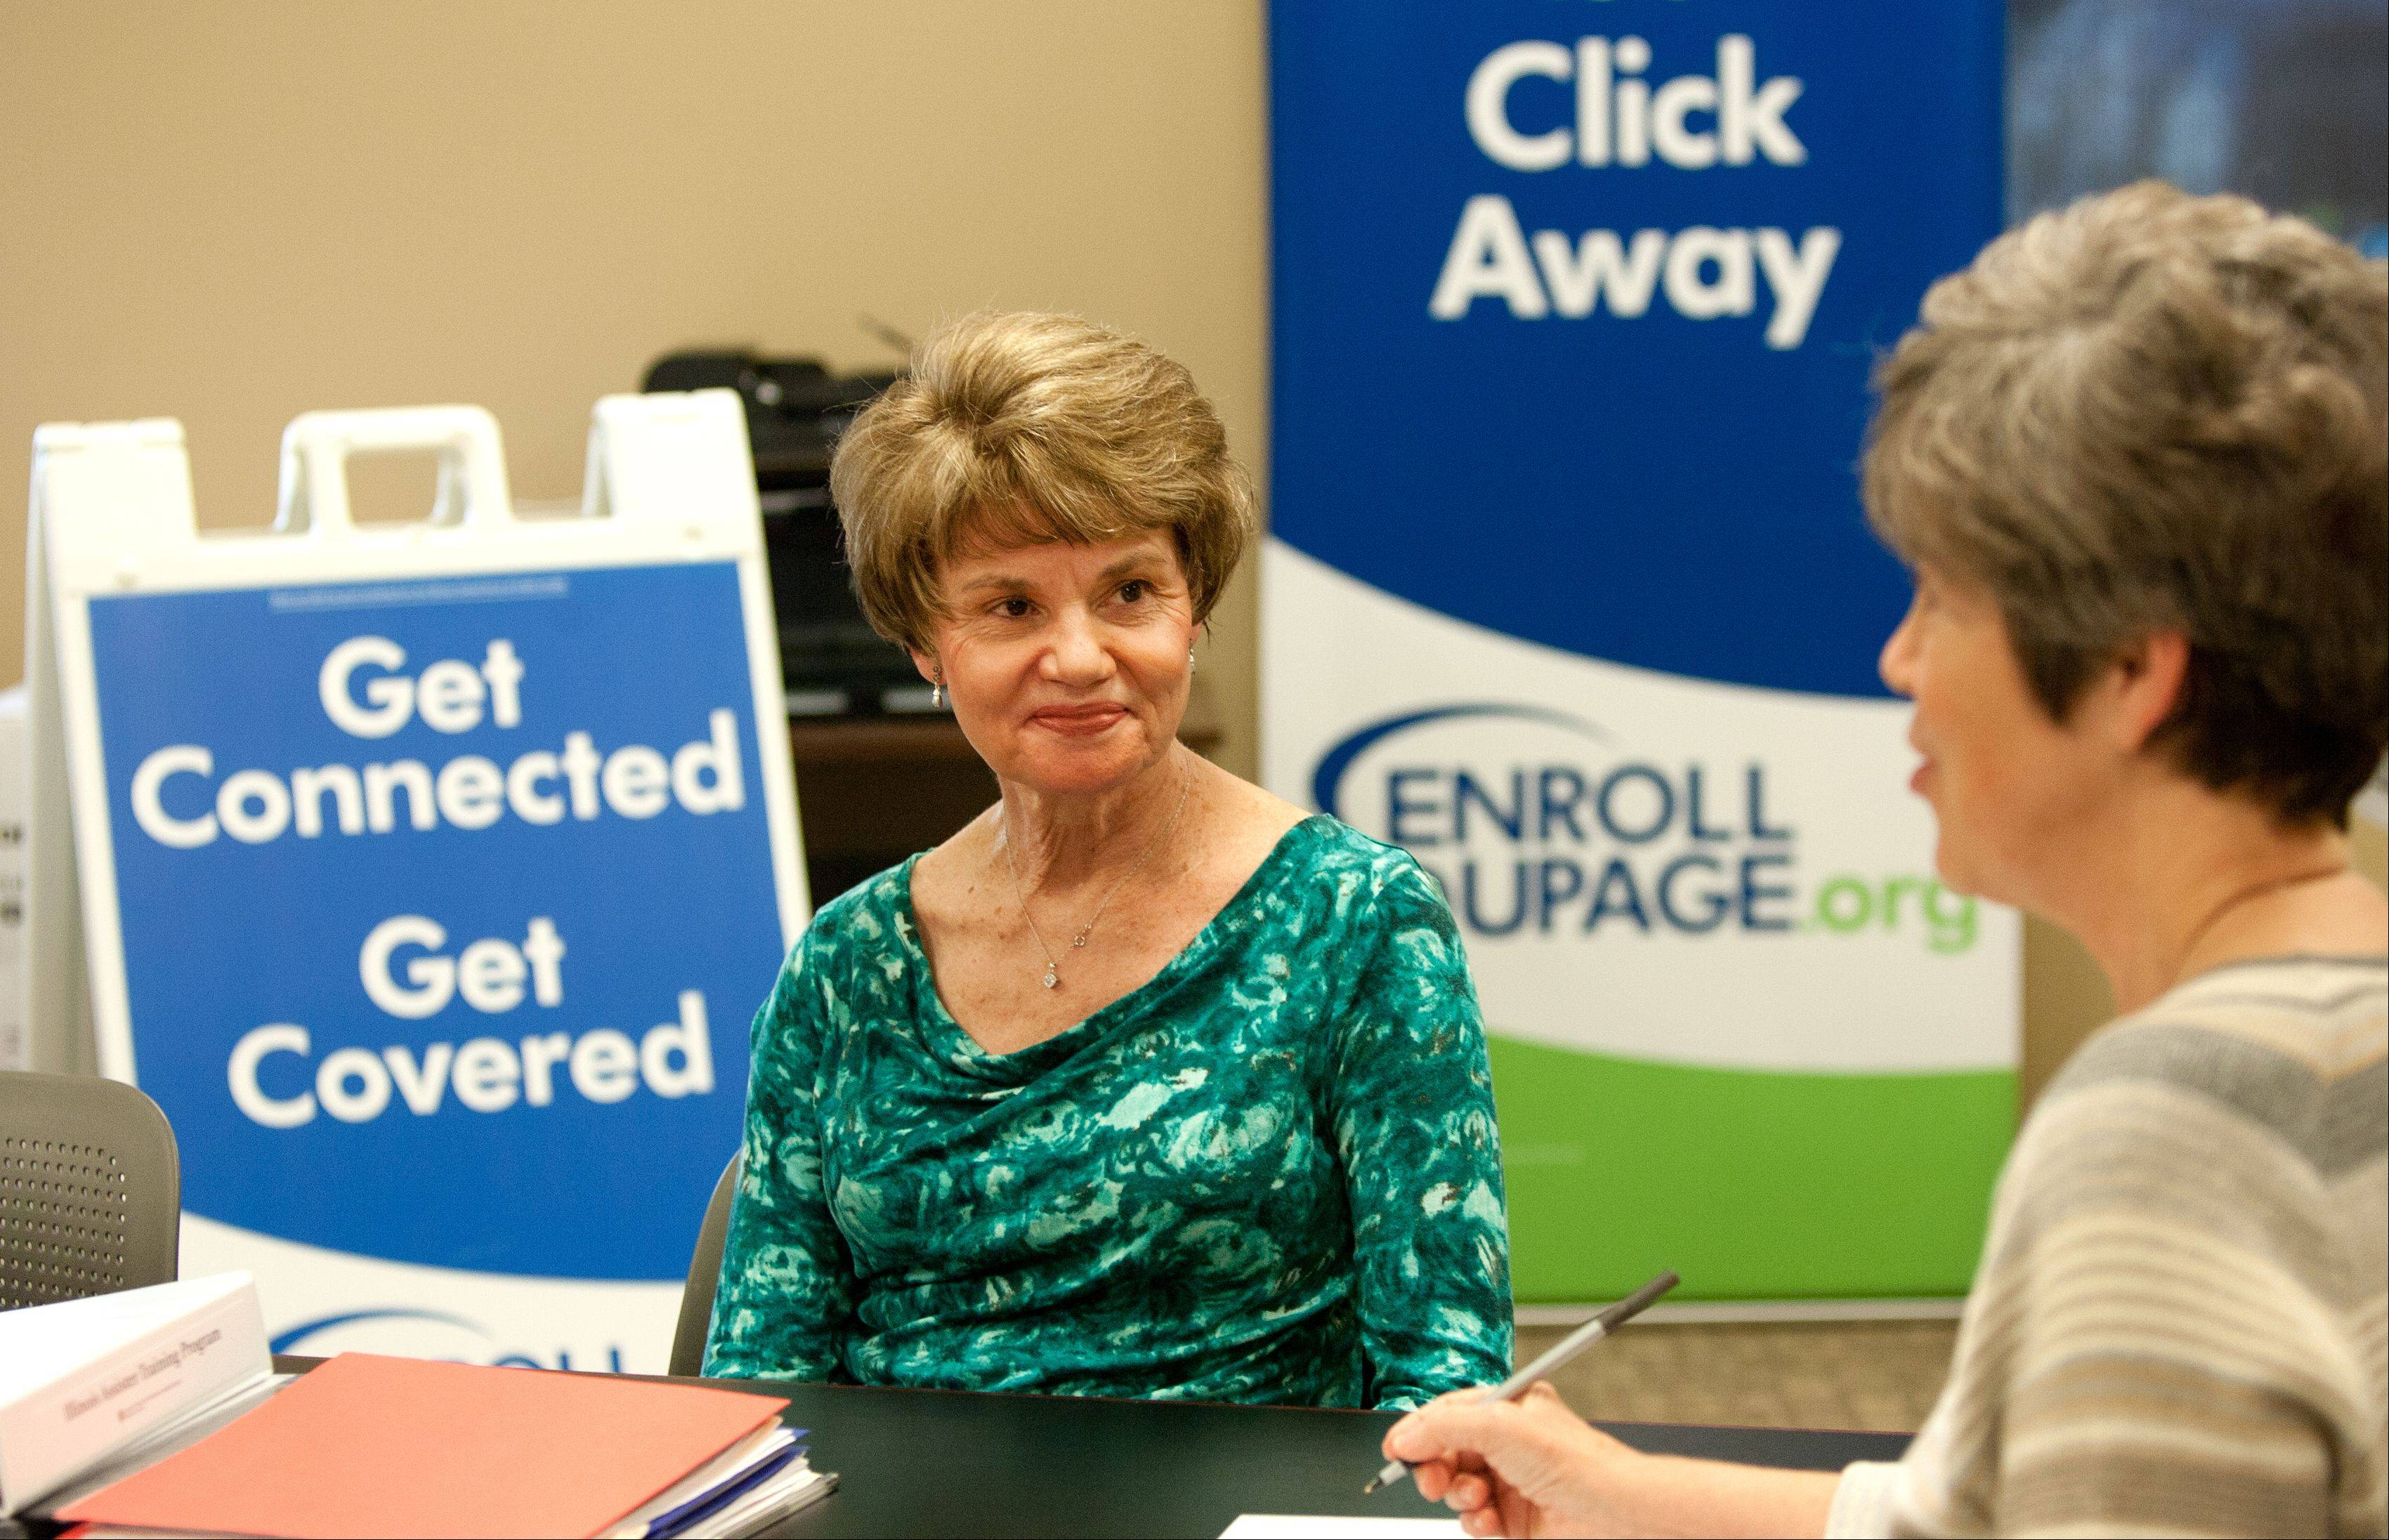 Margie Tarpey, Enroll DuPage program coordinator, left, listens to Jane Macdonald, director of client engagement, as she speaks with a handful of volunteers in training. The meeting at Loaves & Fishes in Naperville occurred to help implement the Affordable Care Act in DuPage County.